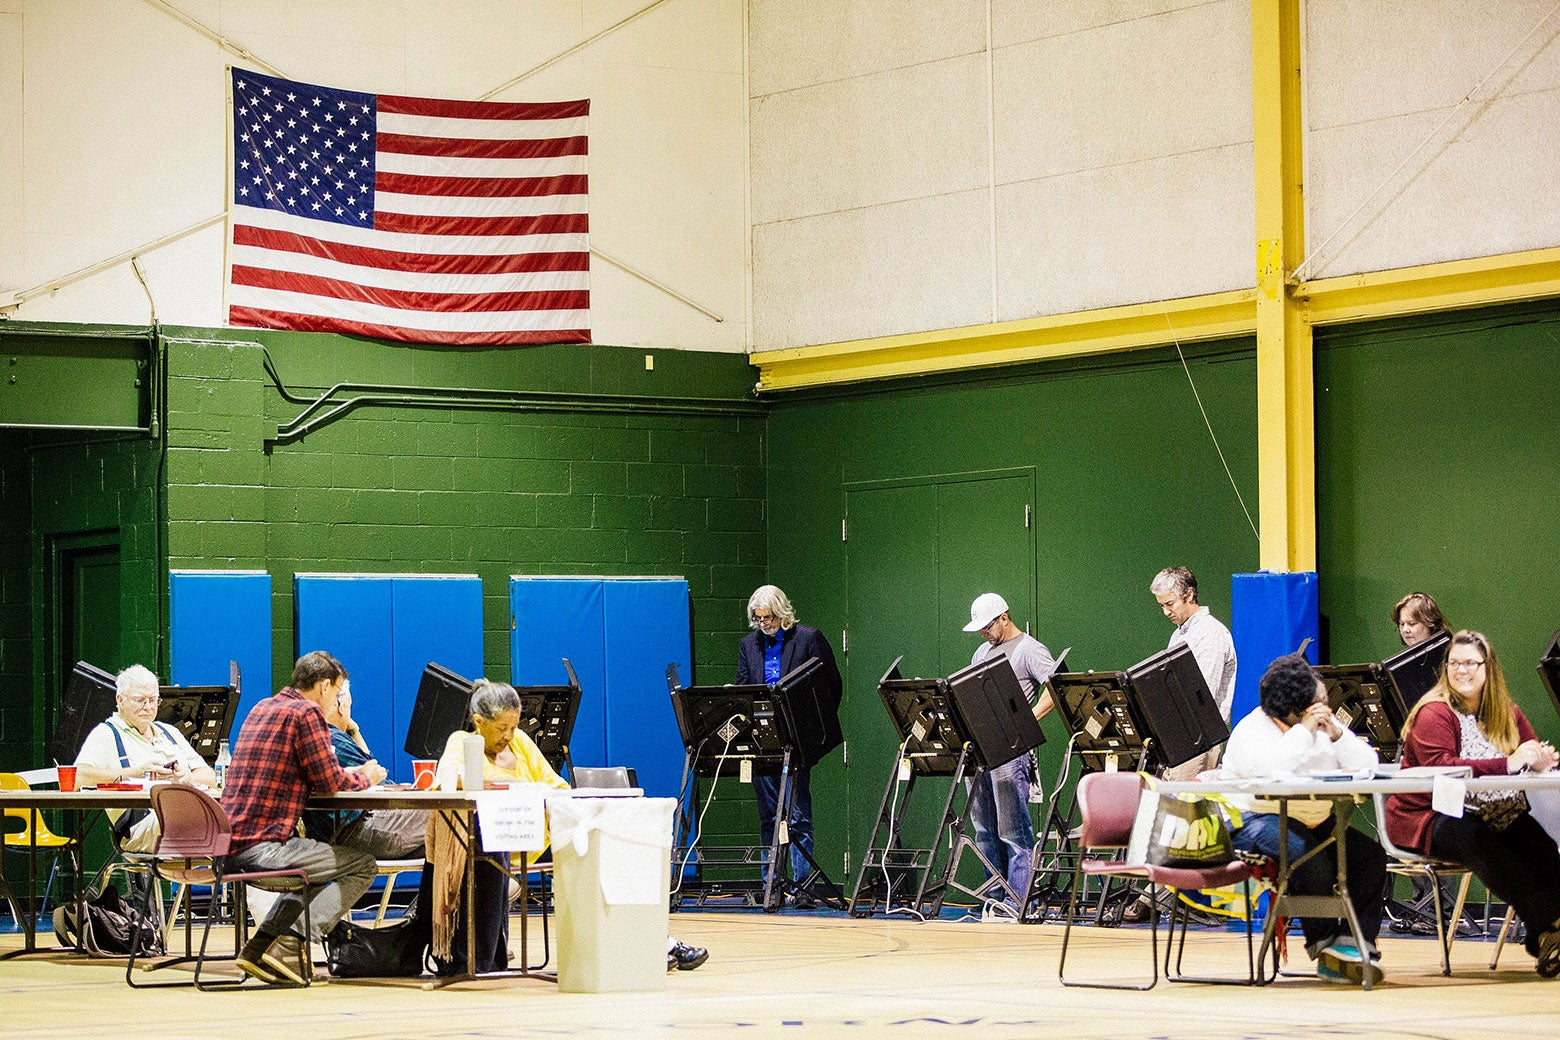 Voters stand behind electronic machines in a rec center gym.